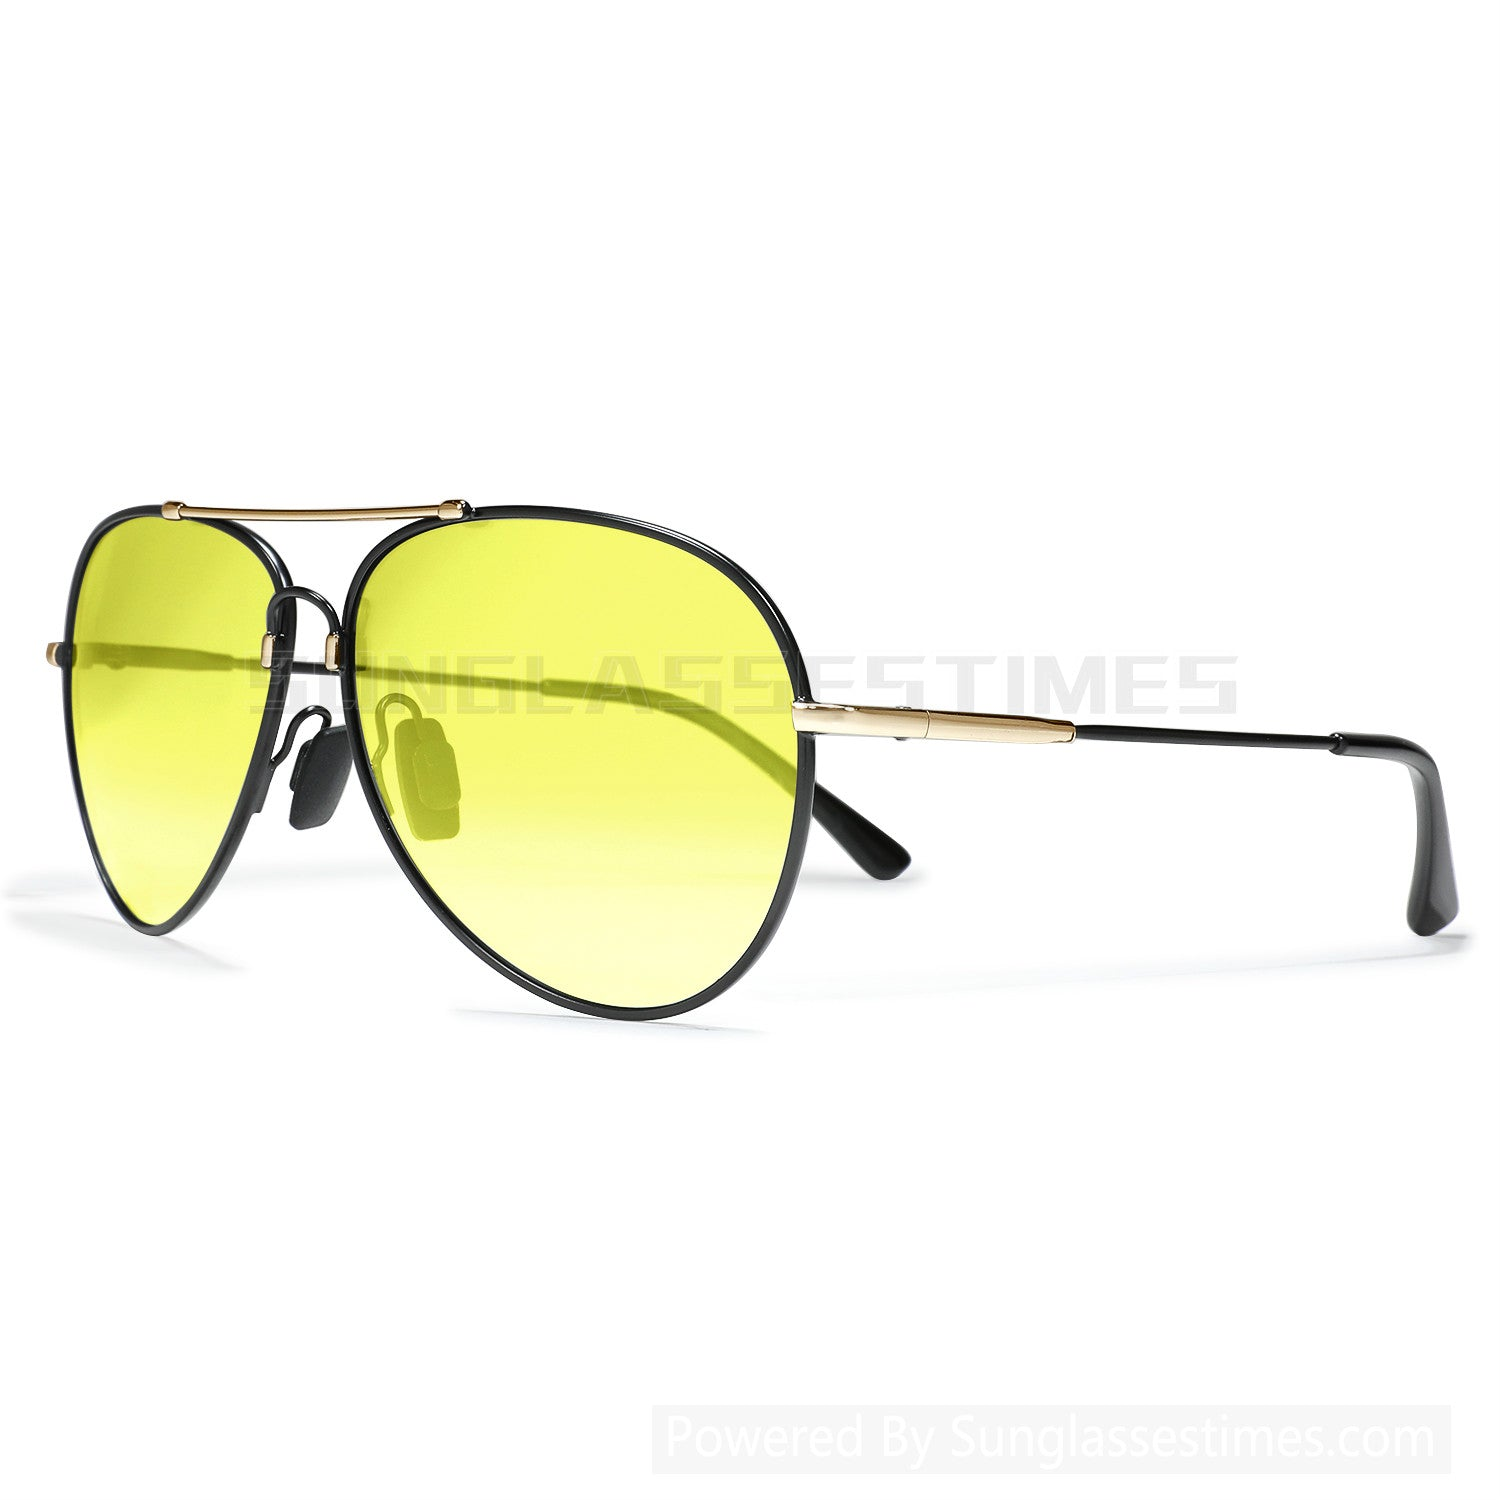 Memory Titanium Frame Polarized Sunglasses UV400